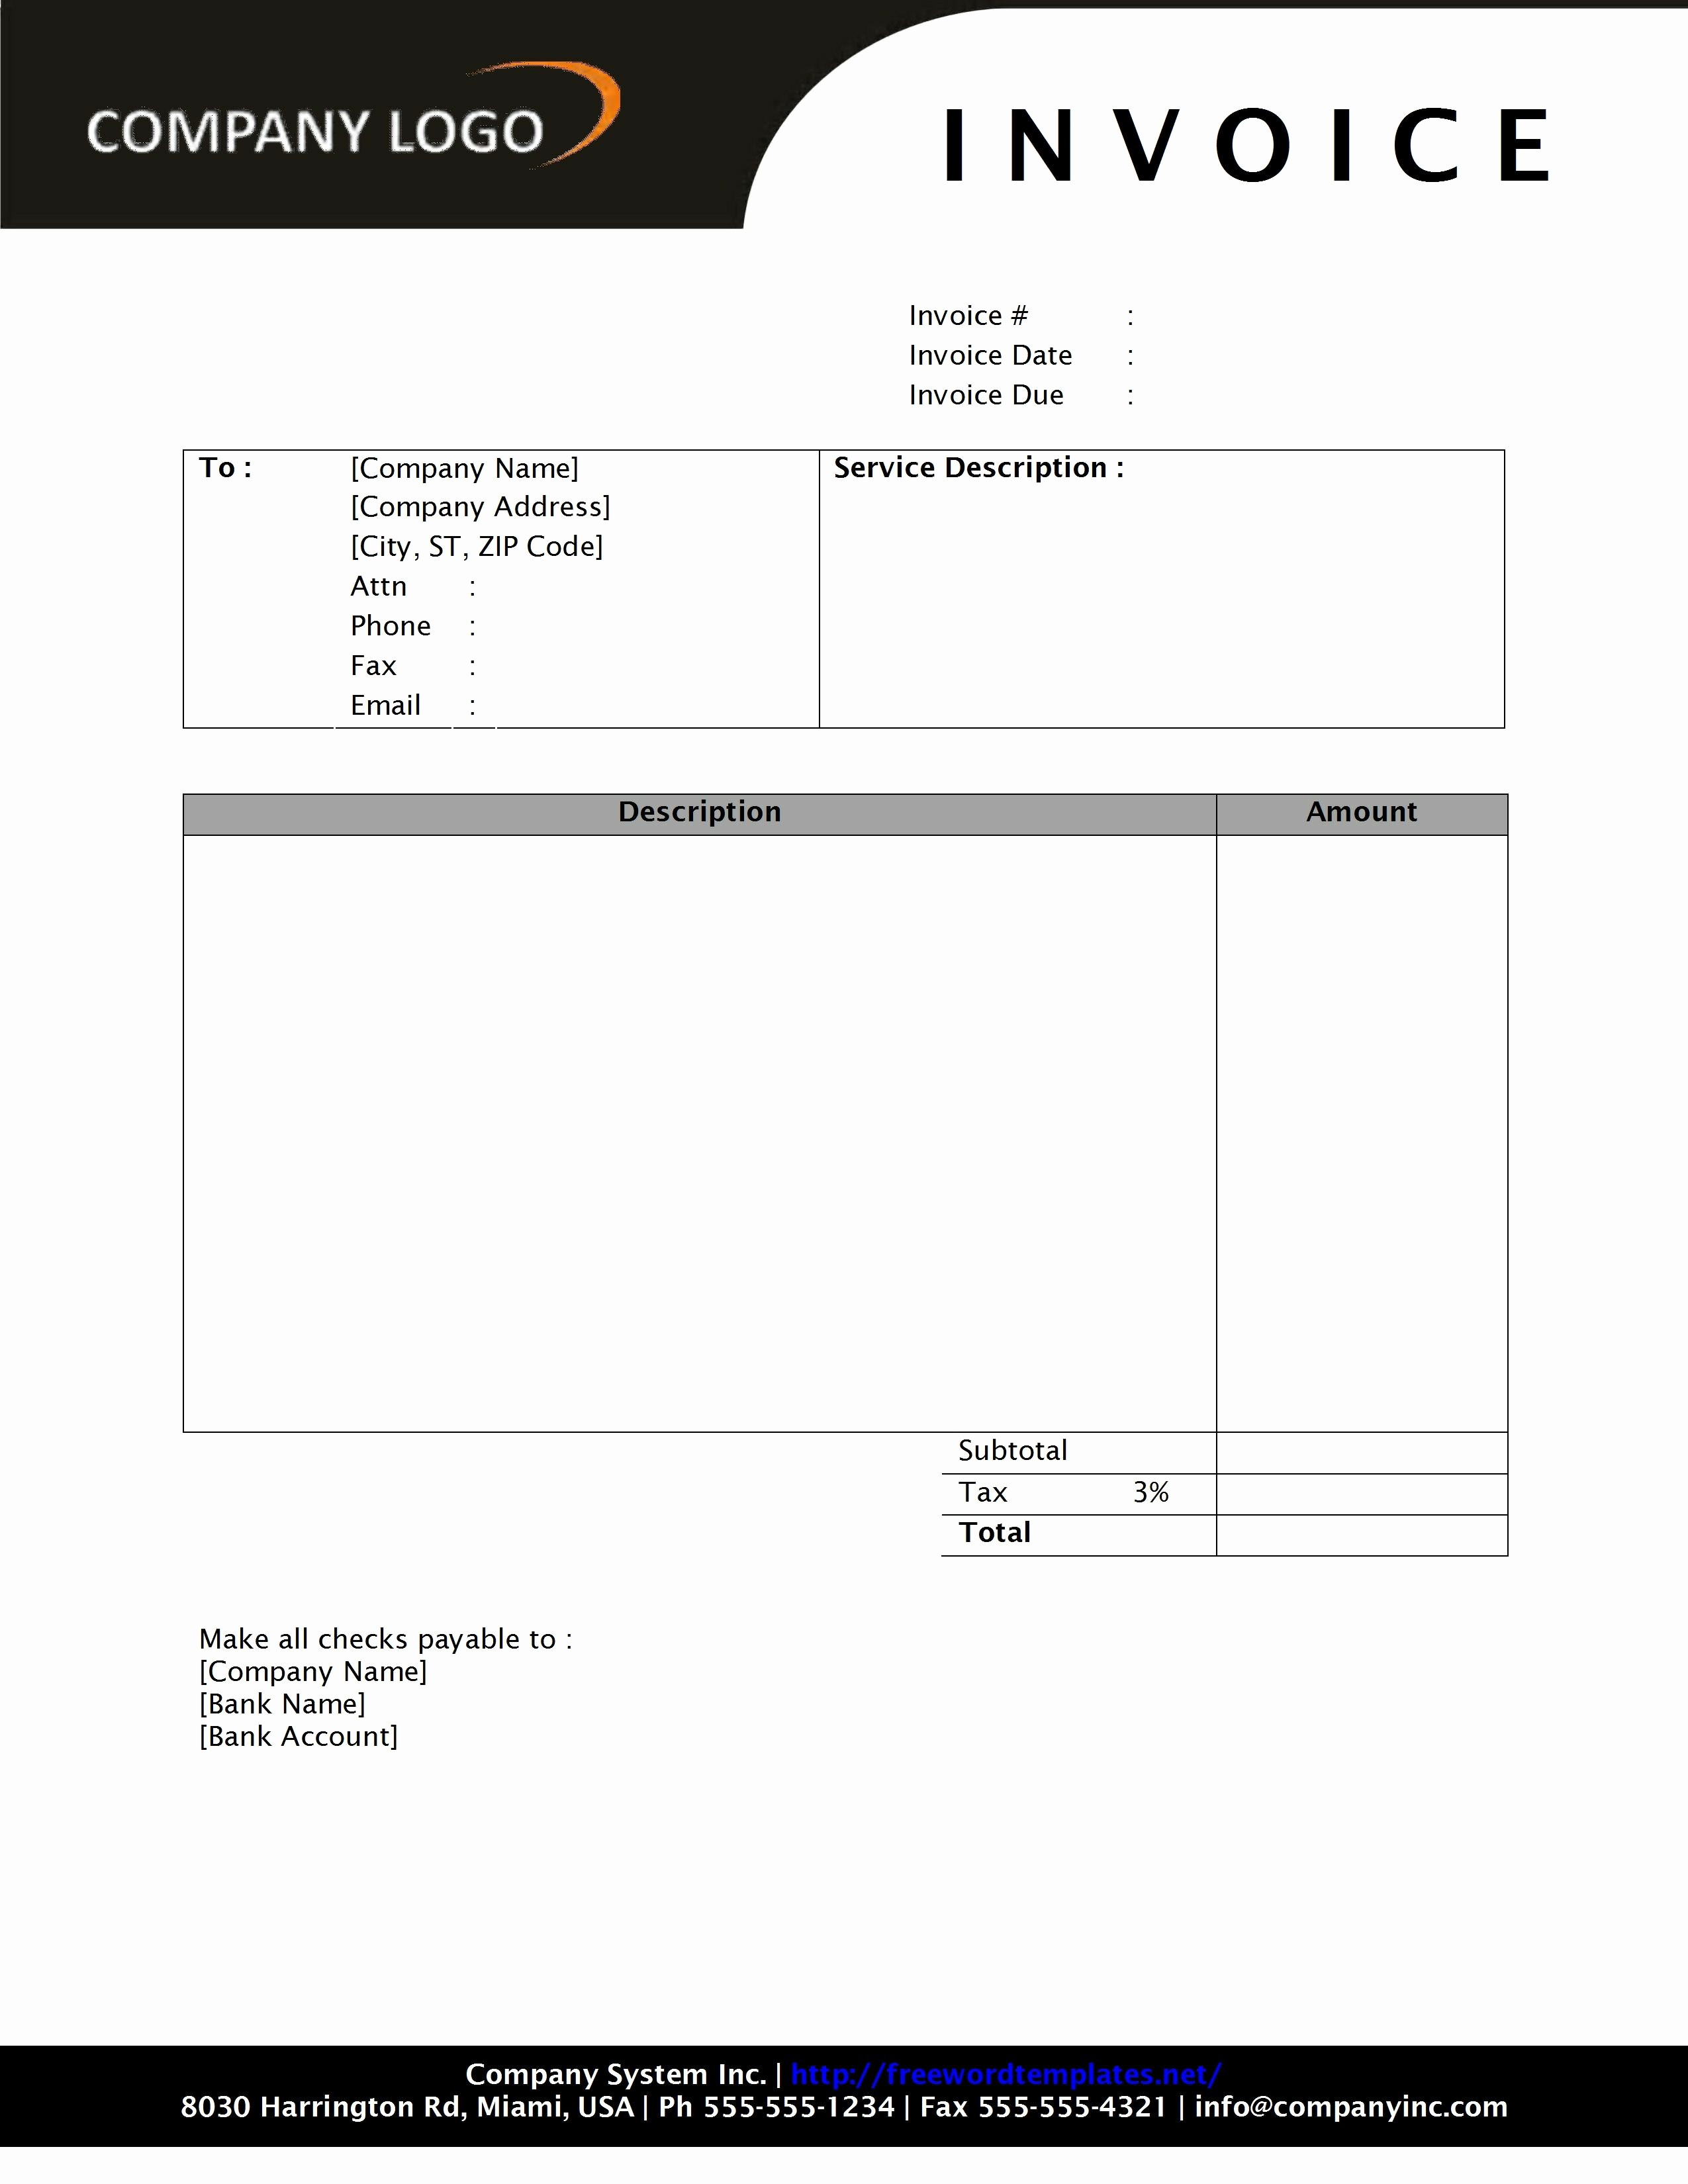 Microsoft Word Invoice Templates Free Lovely Invoice Template Word 2010